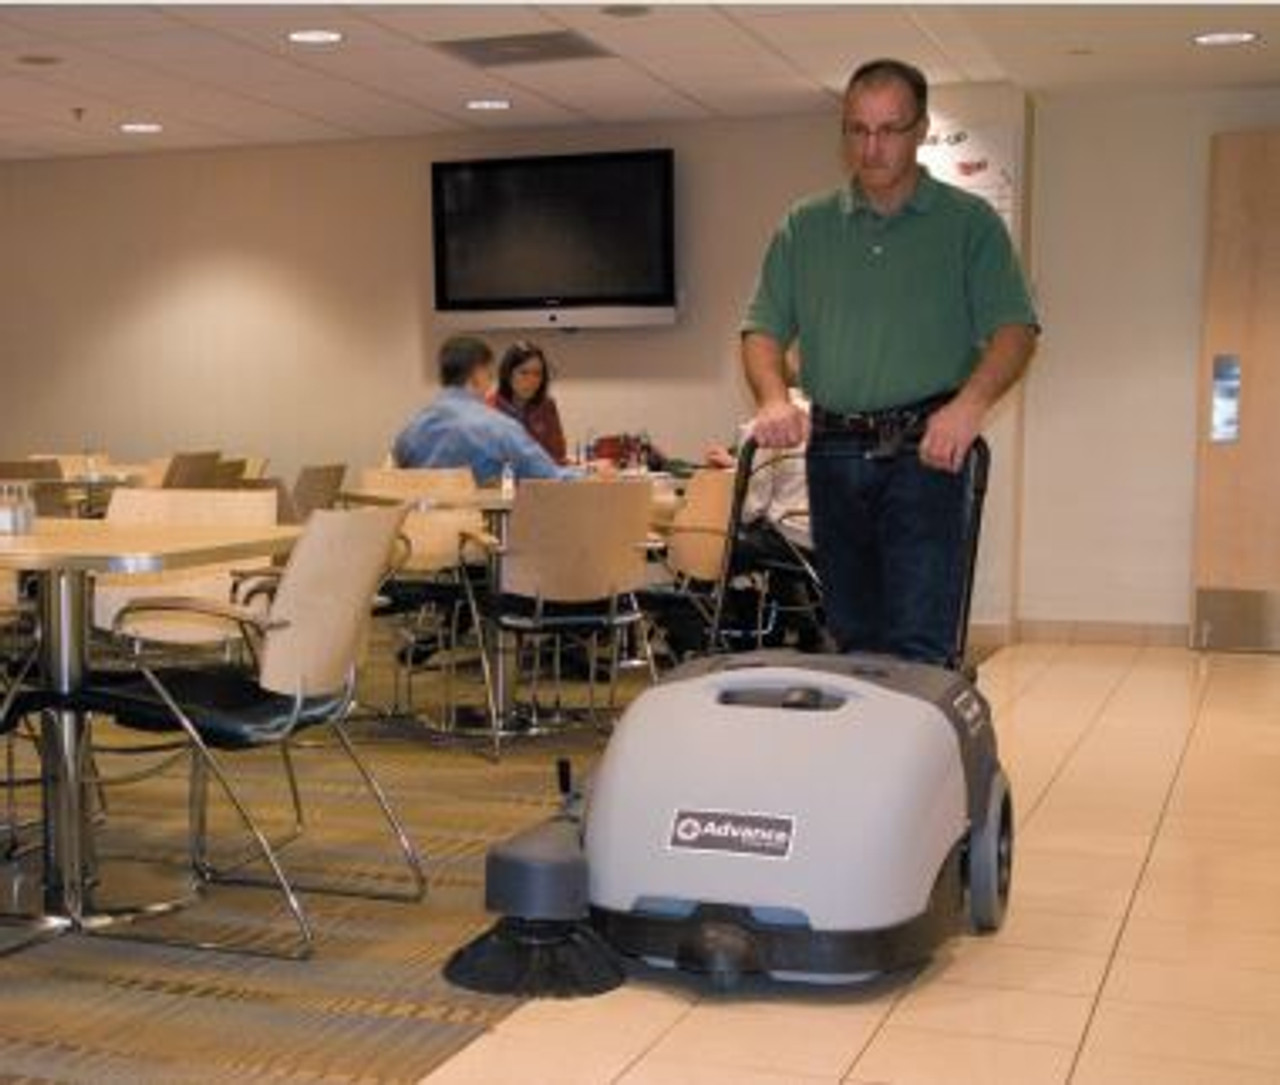 Advance Terra 28B Walk-Behind Sweeper in an Office Setting